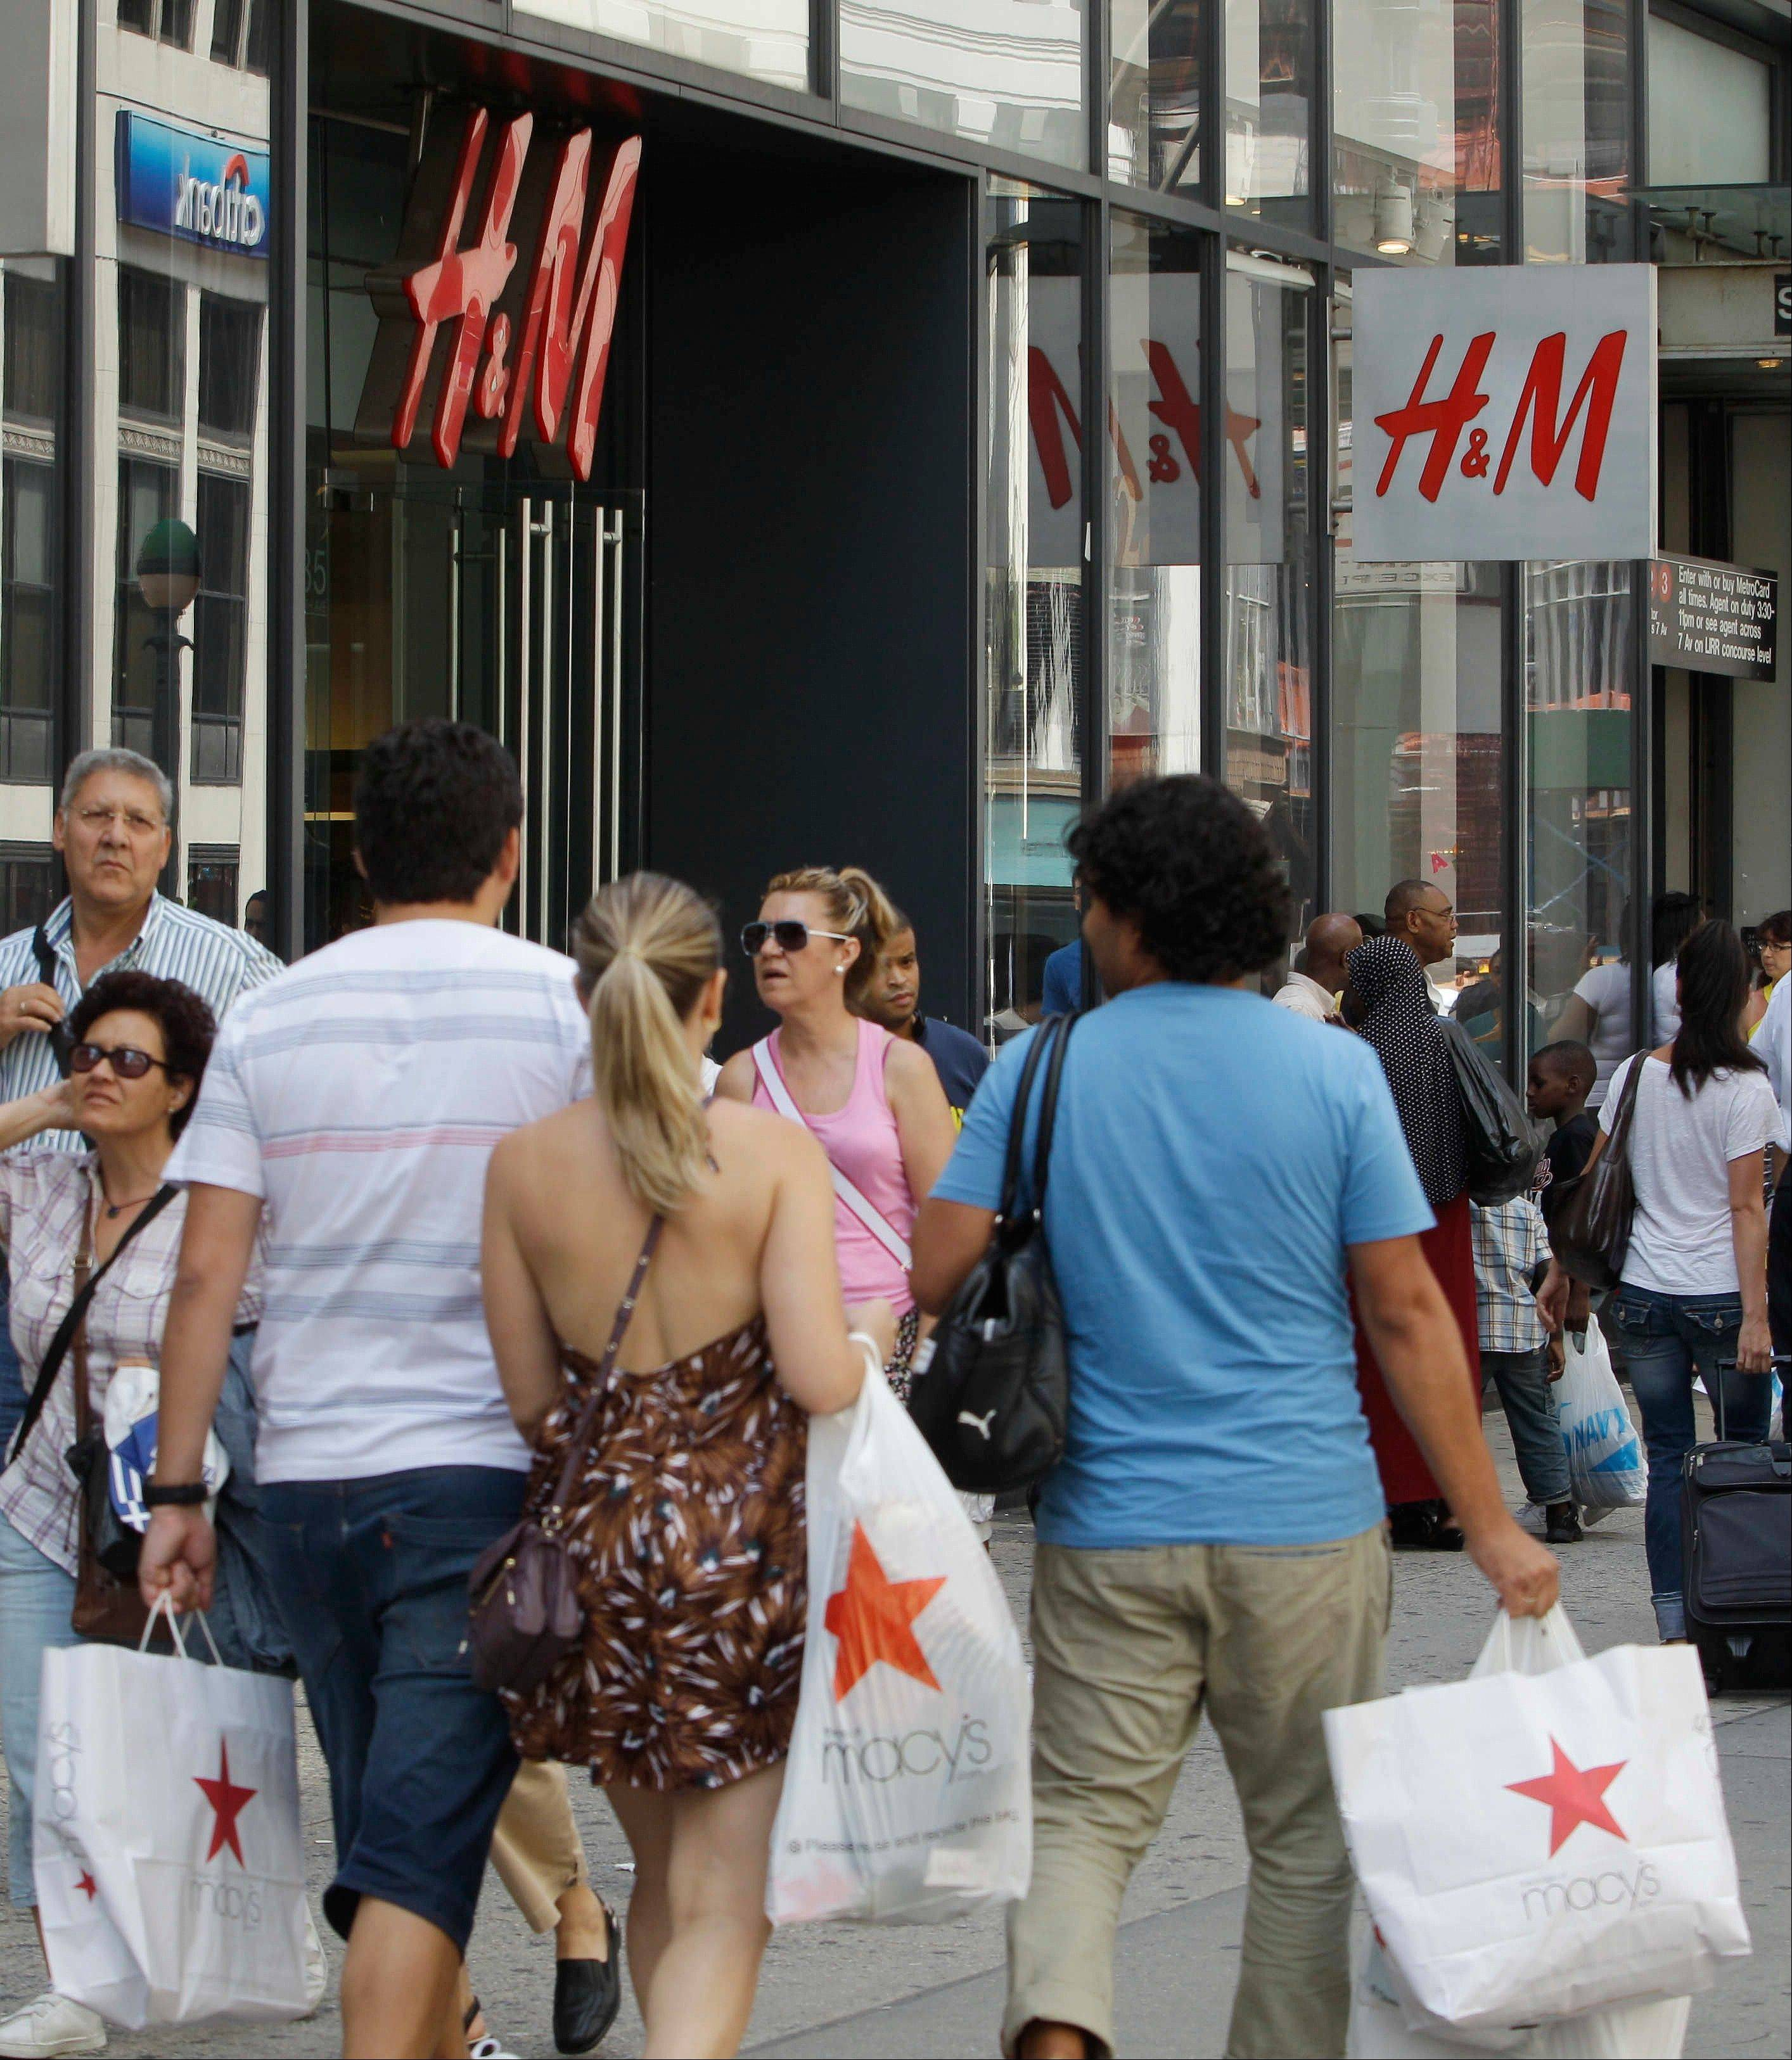 Retail sales in the U.S. climbed in July by the most in four months, showing consumers are holding up even as employment slows.